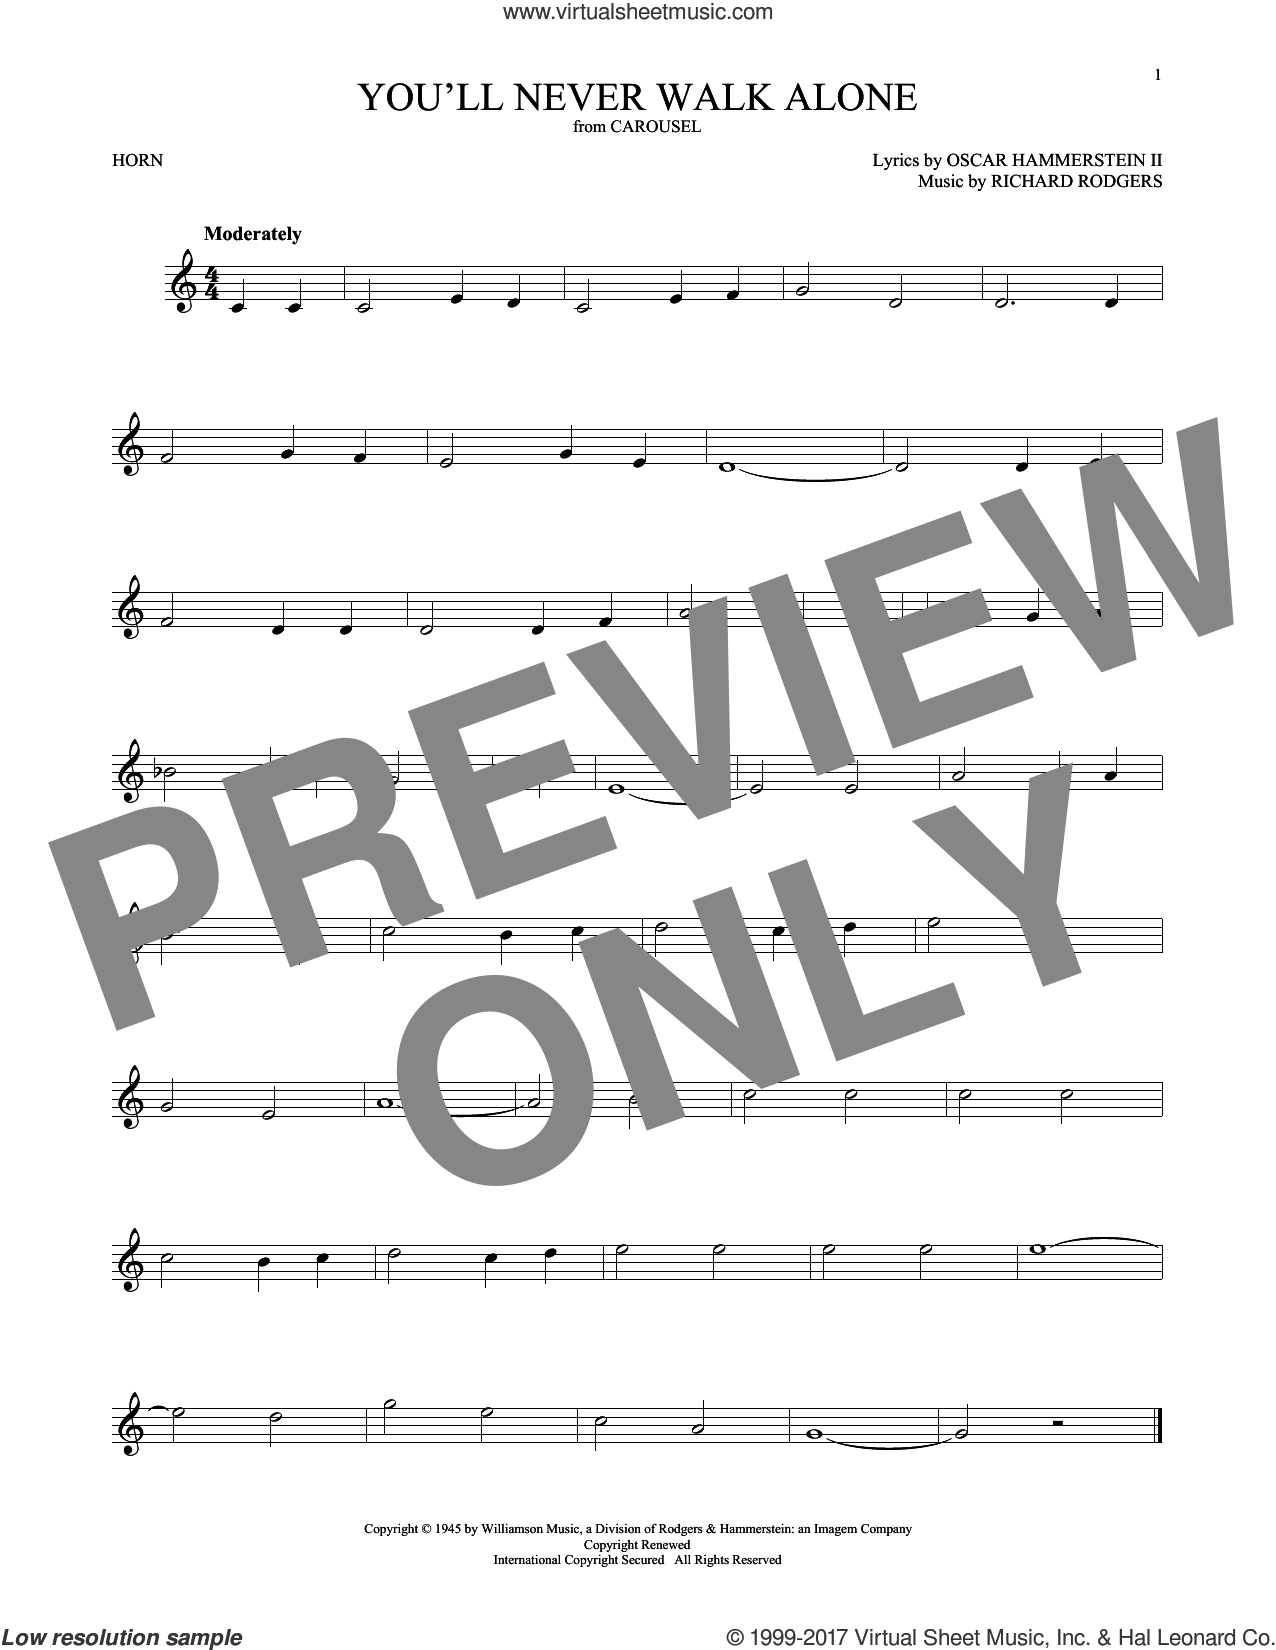 You'll Never Walk Alone sheet music for horn solo by Rodgers & Hammerstein, Oscar II Hammerstein and Richard Rodgers, intermediate skill level